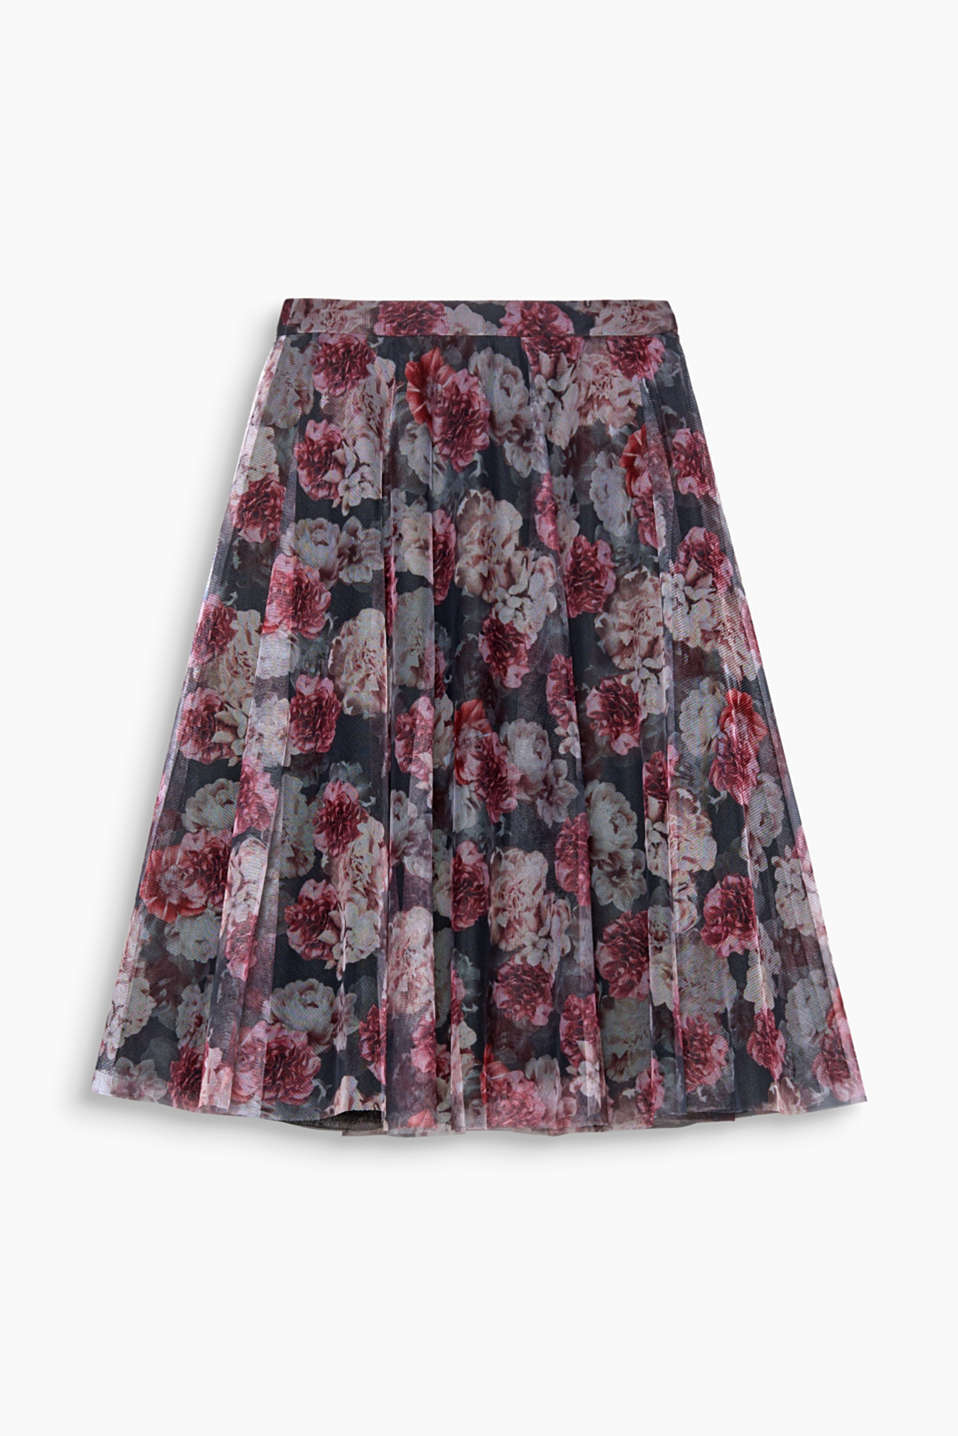 A dream of tulle and flowers: this swirling midi skirt with an all-over floral print will put you straight in the limelight!